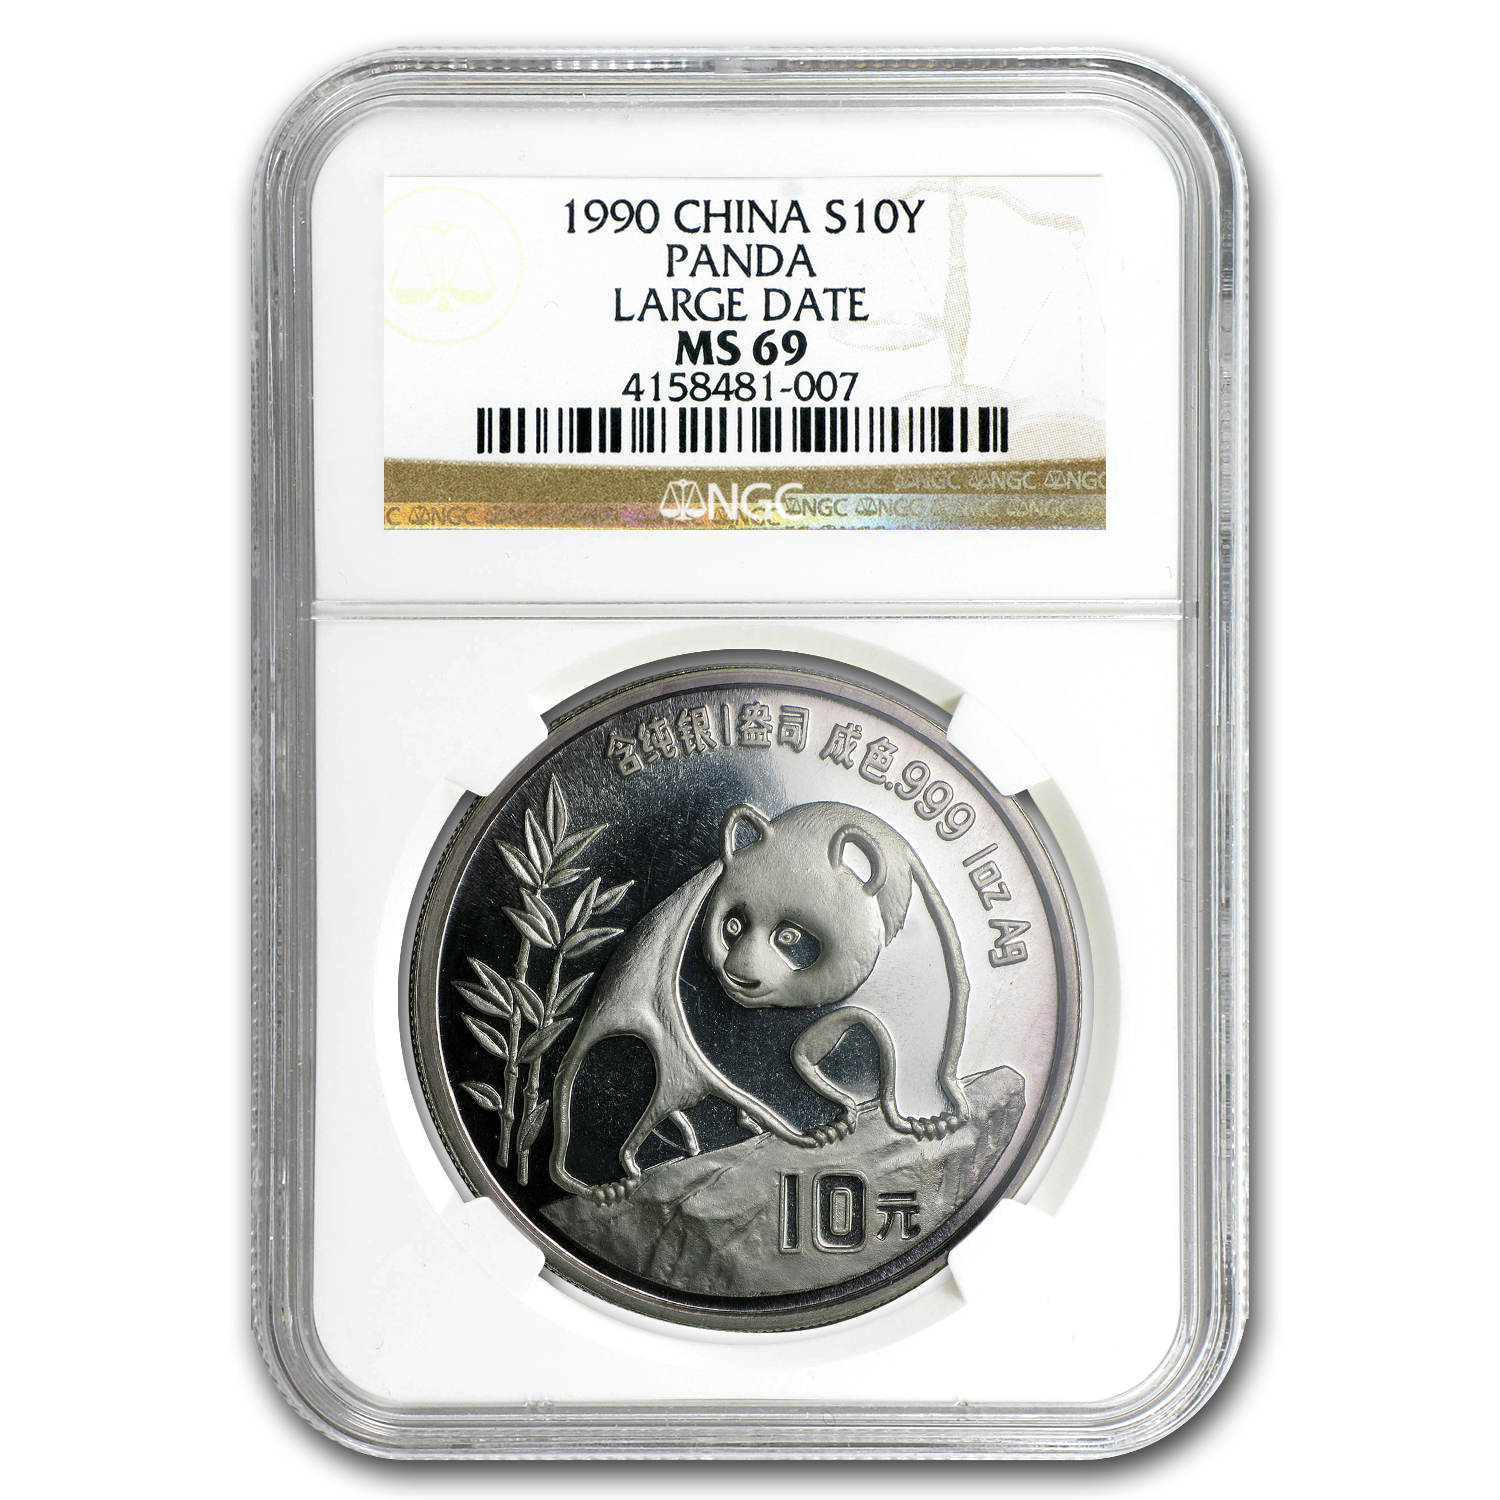 1990 1 oz Silver Chinese Panda MS-69 NGC (Large Date)